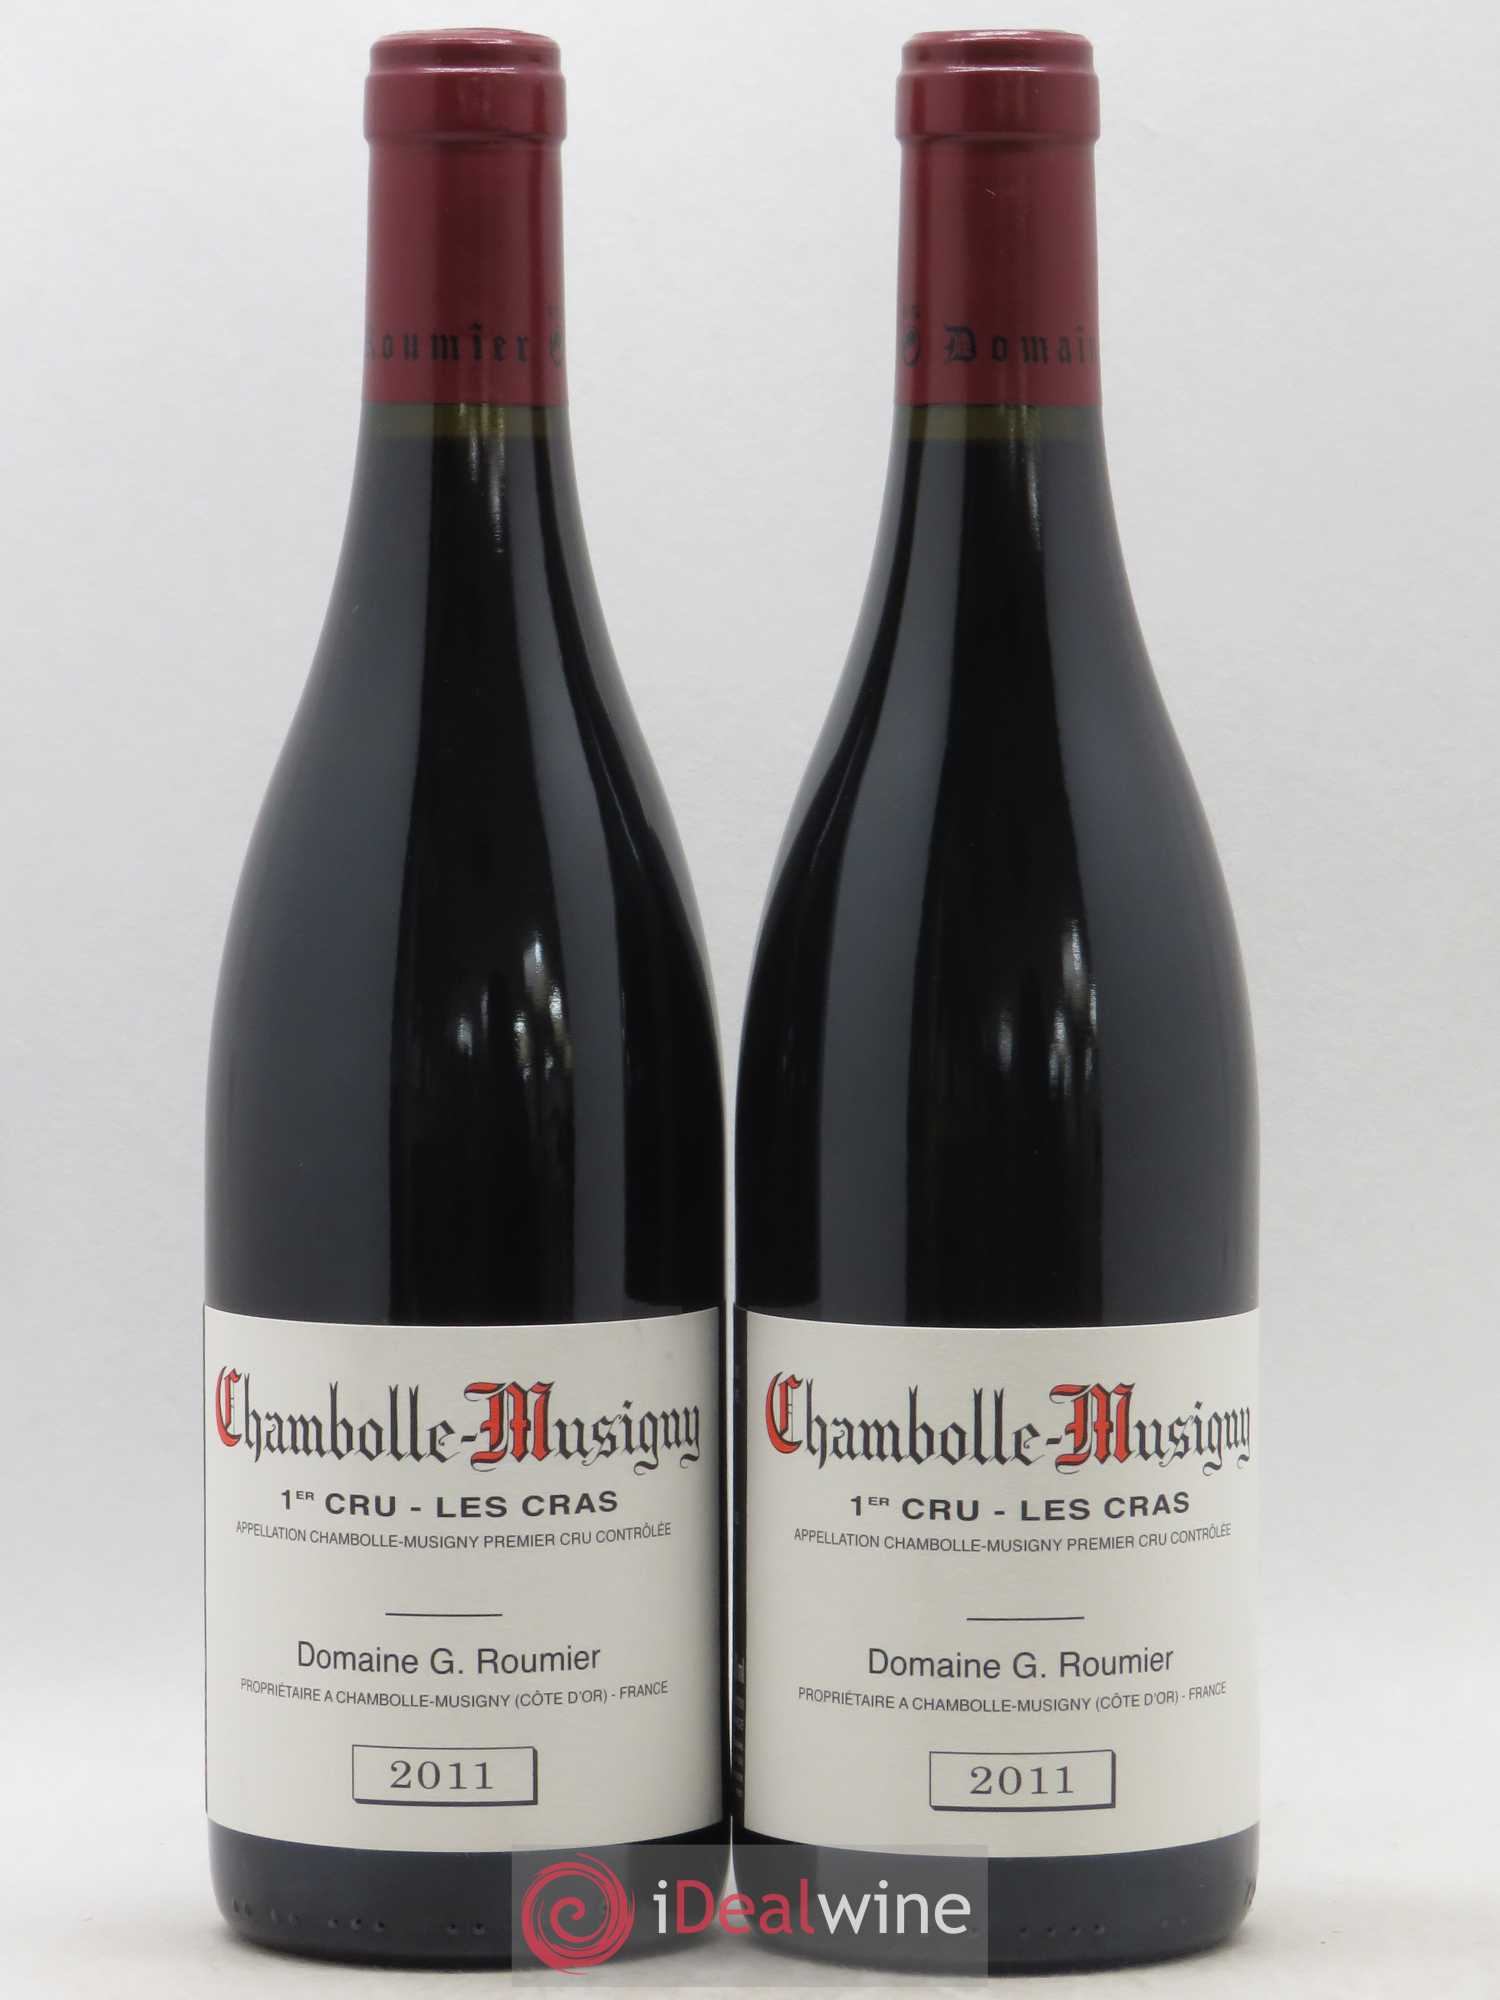 Chambolle-Musigny 1er Cru Les Cras Georges Roumier (Domaine)  2011 - Lot of 2 Bottles